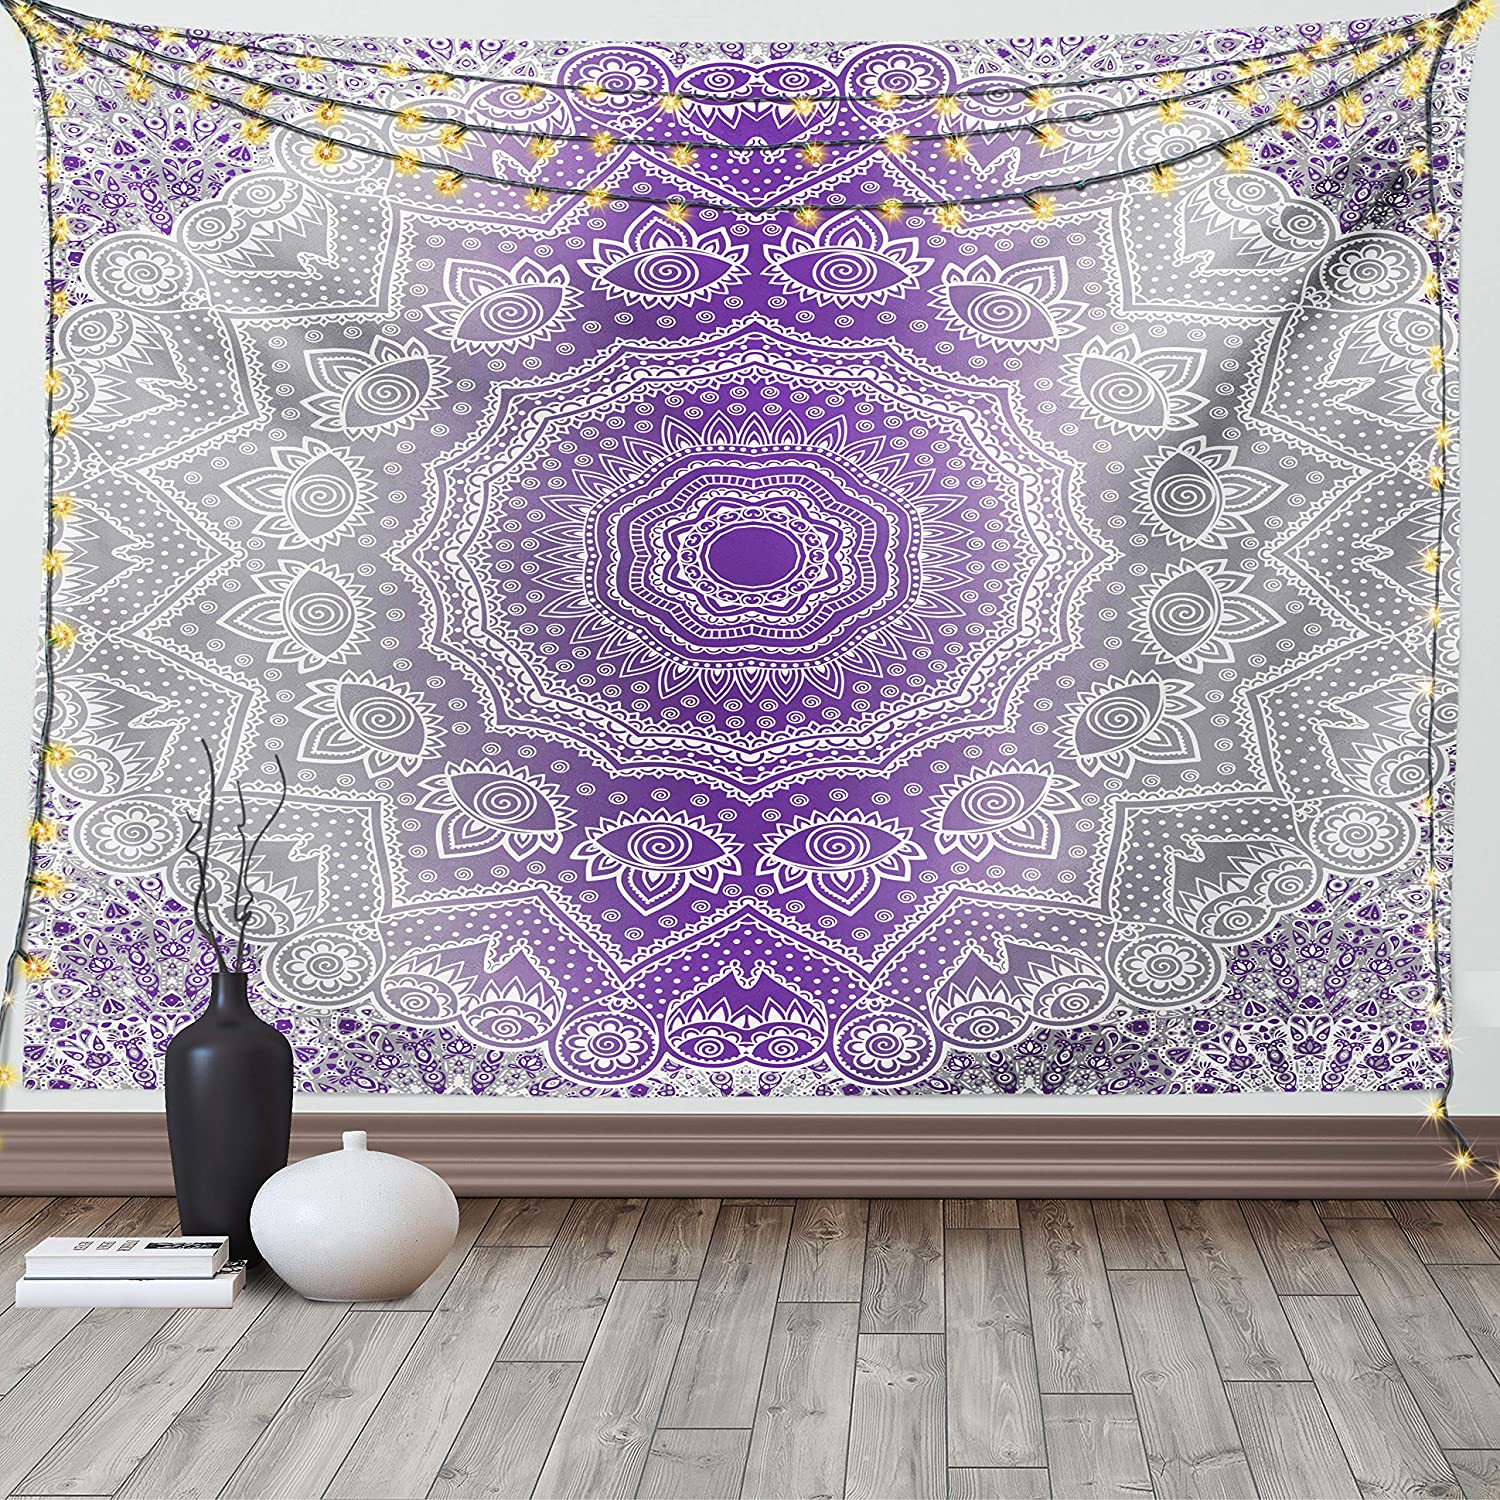 Ambesonne Grey and Purple Tapestry, Ombre Mandala Abstract Eastern Art Cosmos Theme Sign Design Oriental Print, Wide Wall Hanging for Bedroom Living Room Dorm, 60